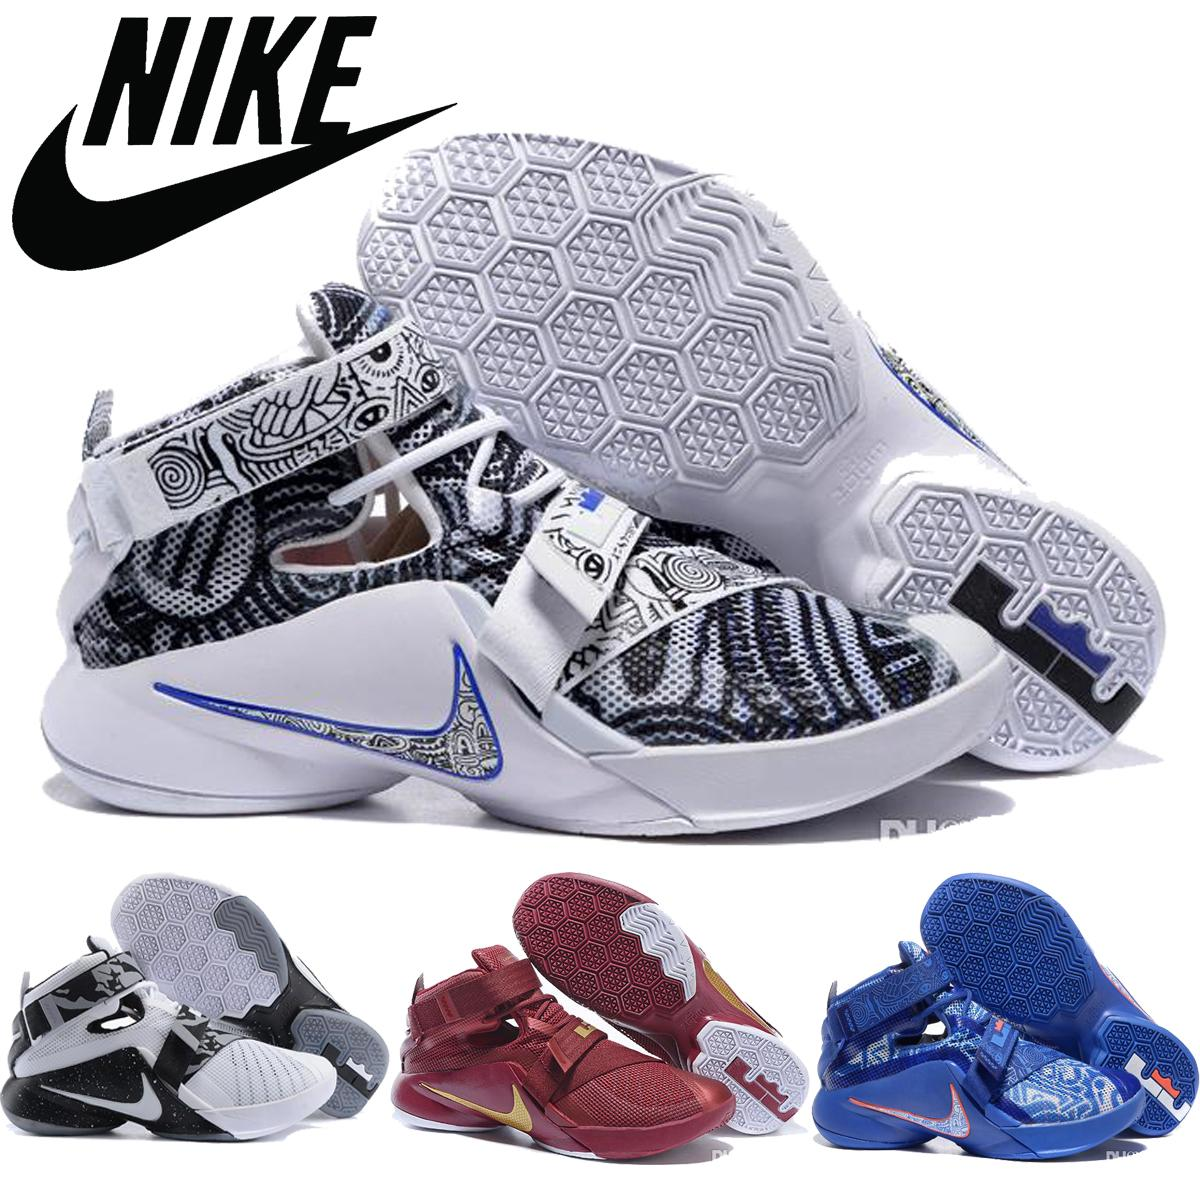 2fee21dbf7c6 ... 50% off nike lebron soldier 9 ix basketball shoes for men quai54 black  what the